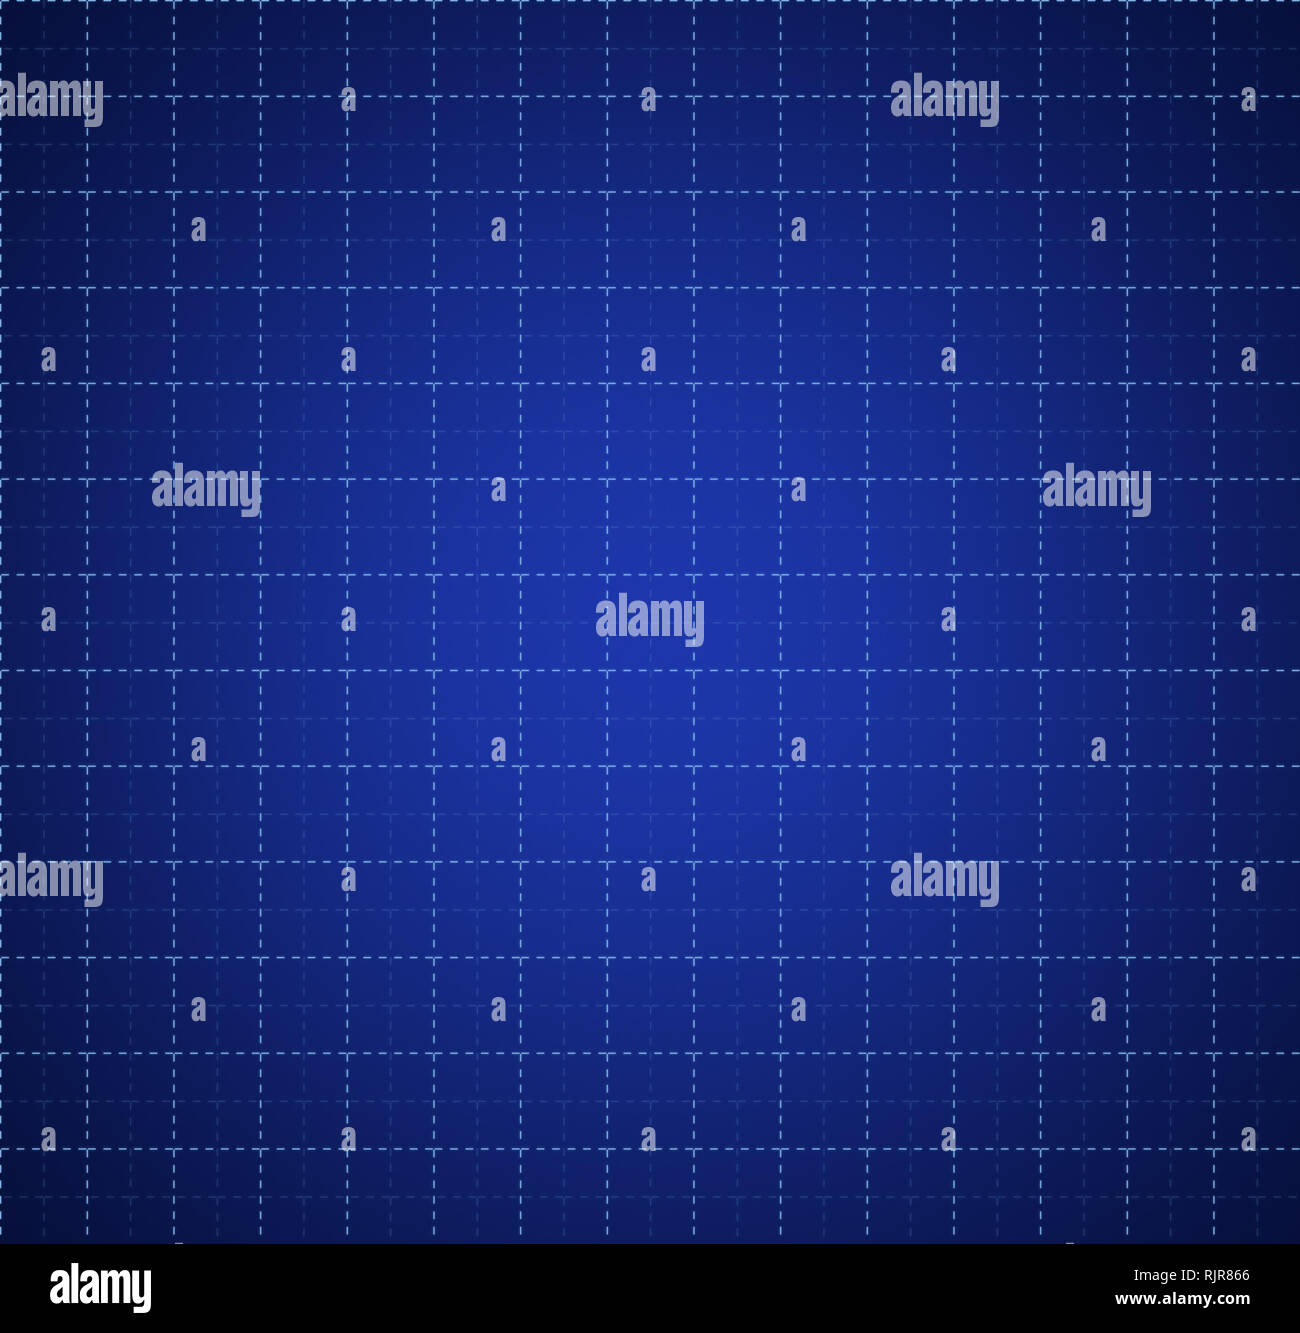 Simple abstract square grid made of dashed lines on blue background, darker on the edges. - Stock Image